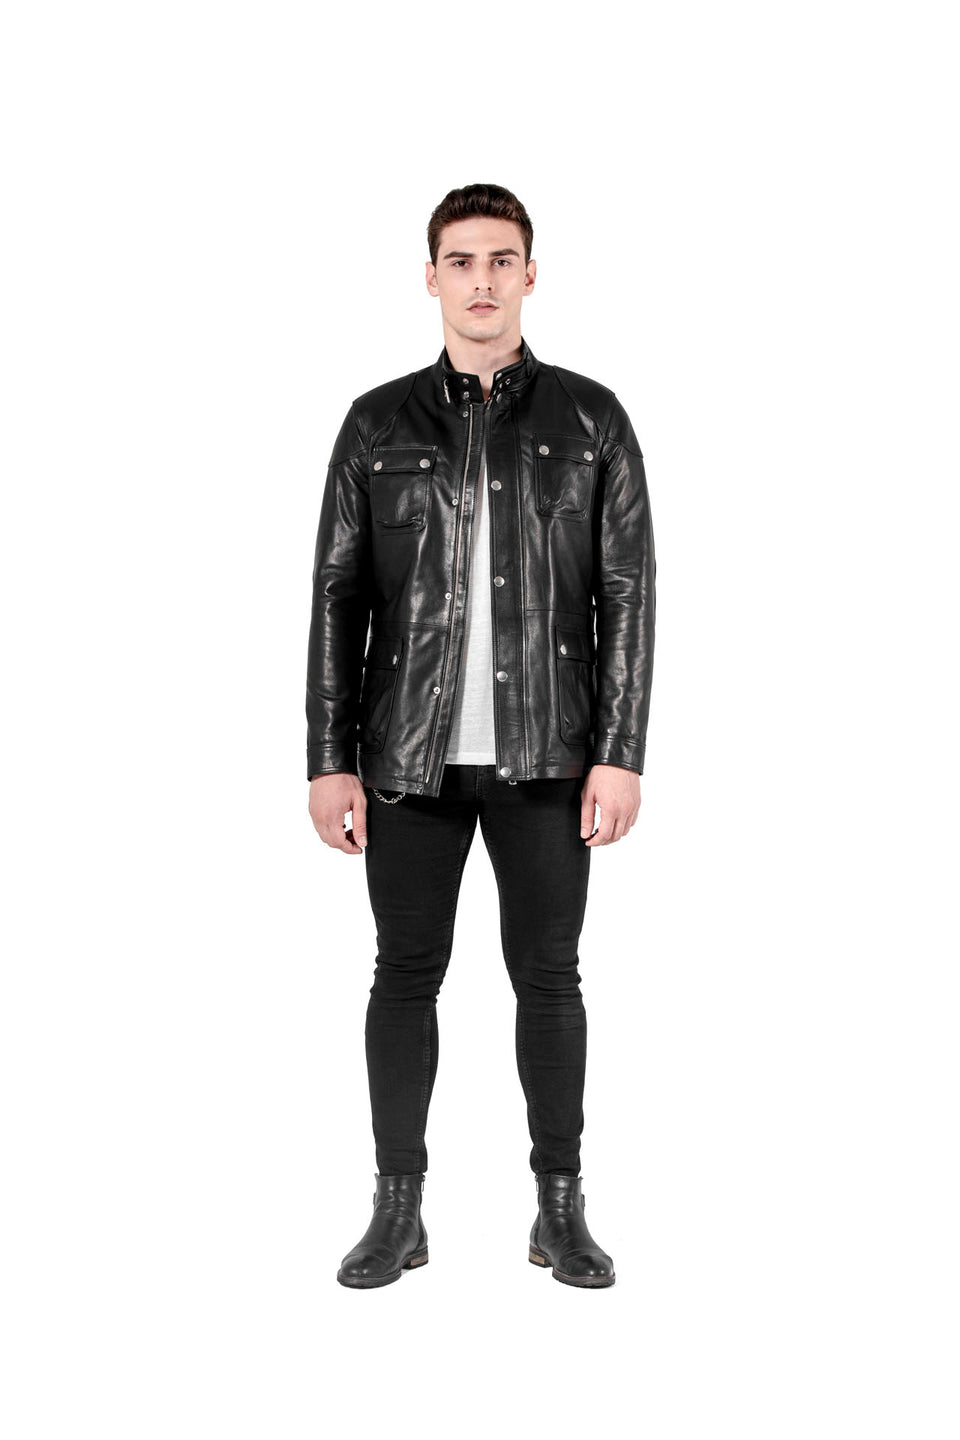 Patriot - Men's Black Genuine Leather Jacket Fashion 2020